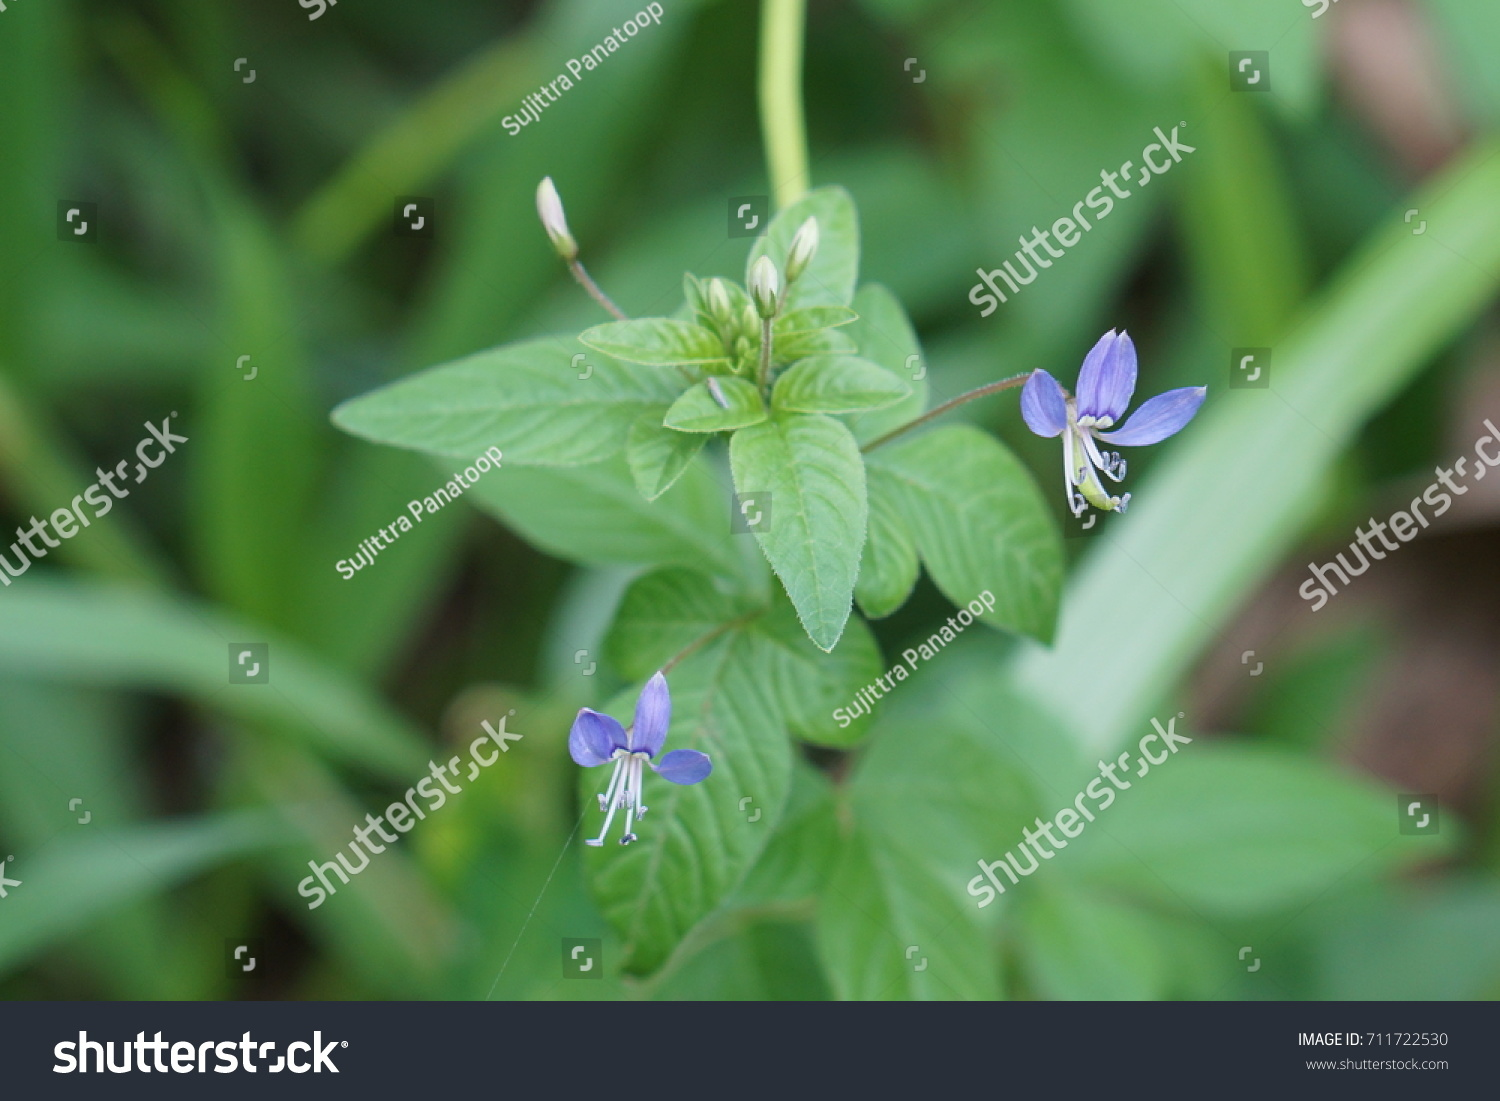 Small blue flowers on the tree in the garden ez canvas id 711722530 izmirmasajfo